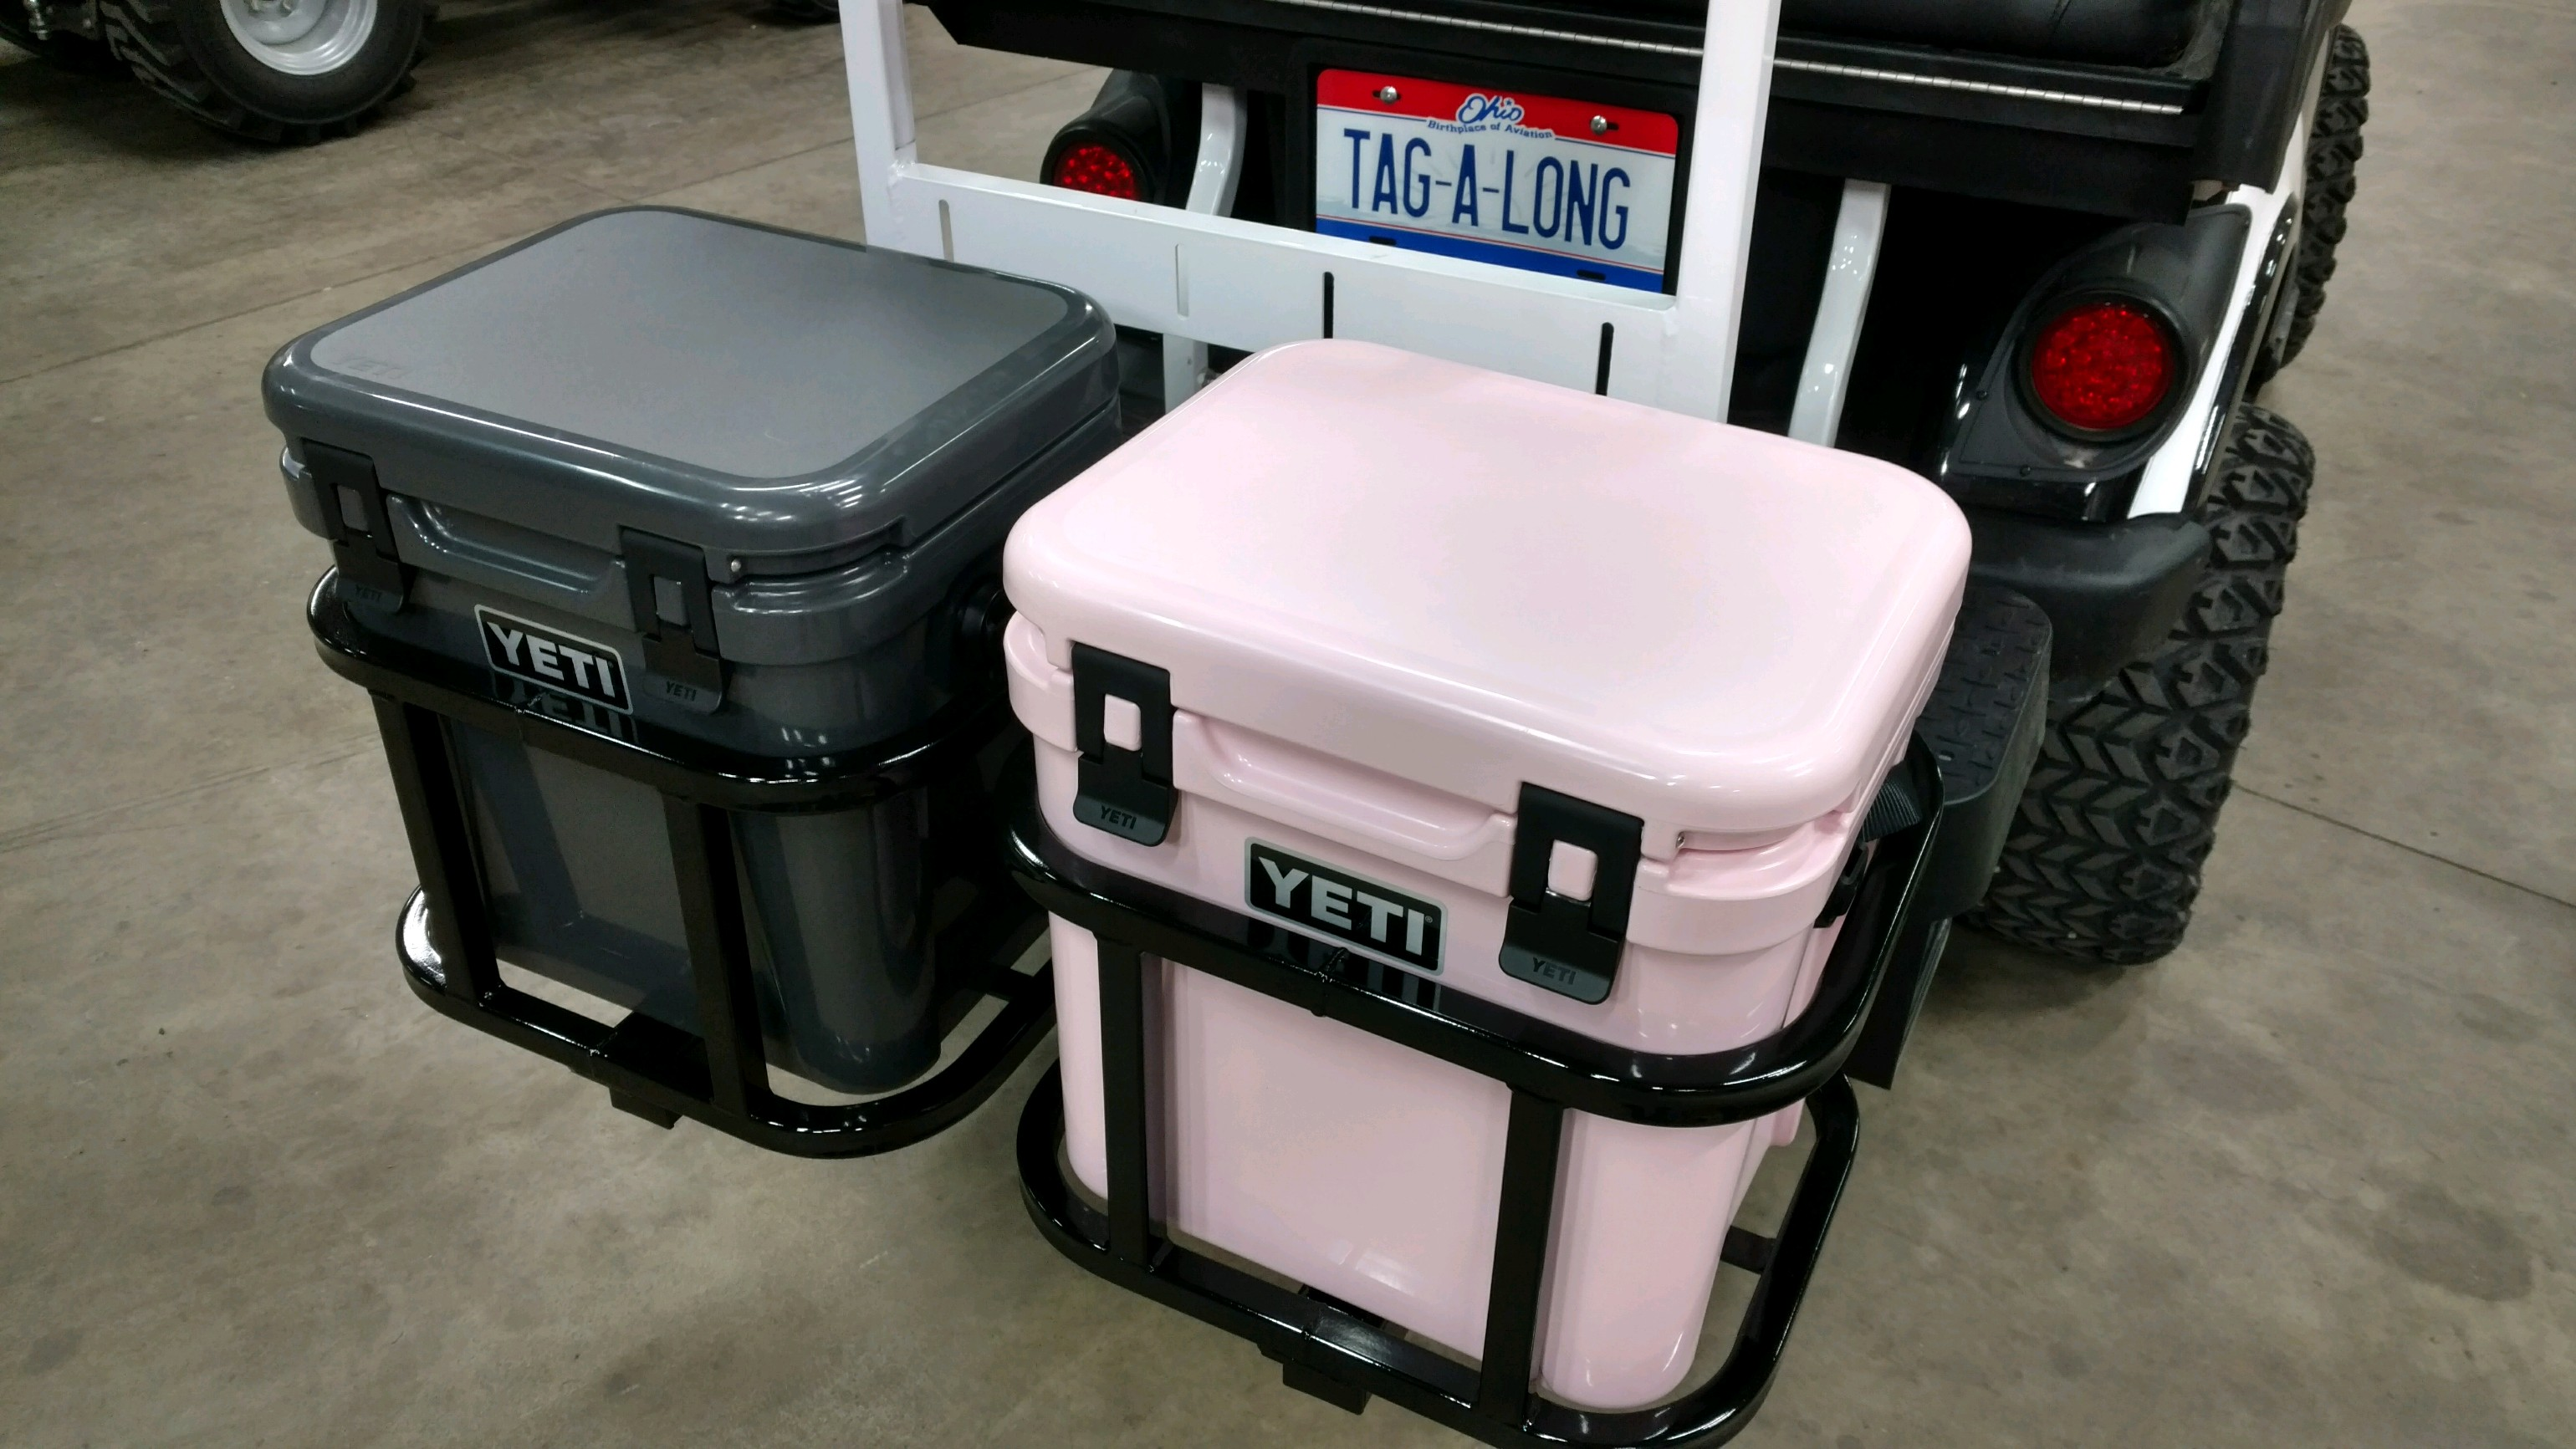 Yeti 24 Double His & Her's Cooler Carrier